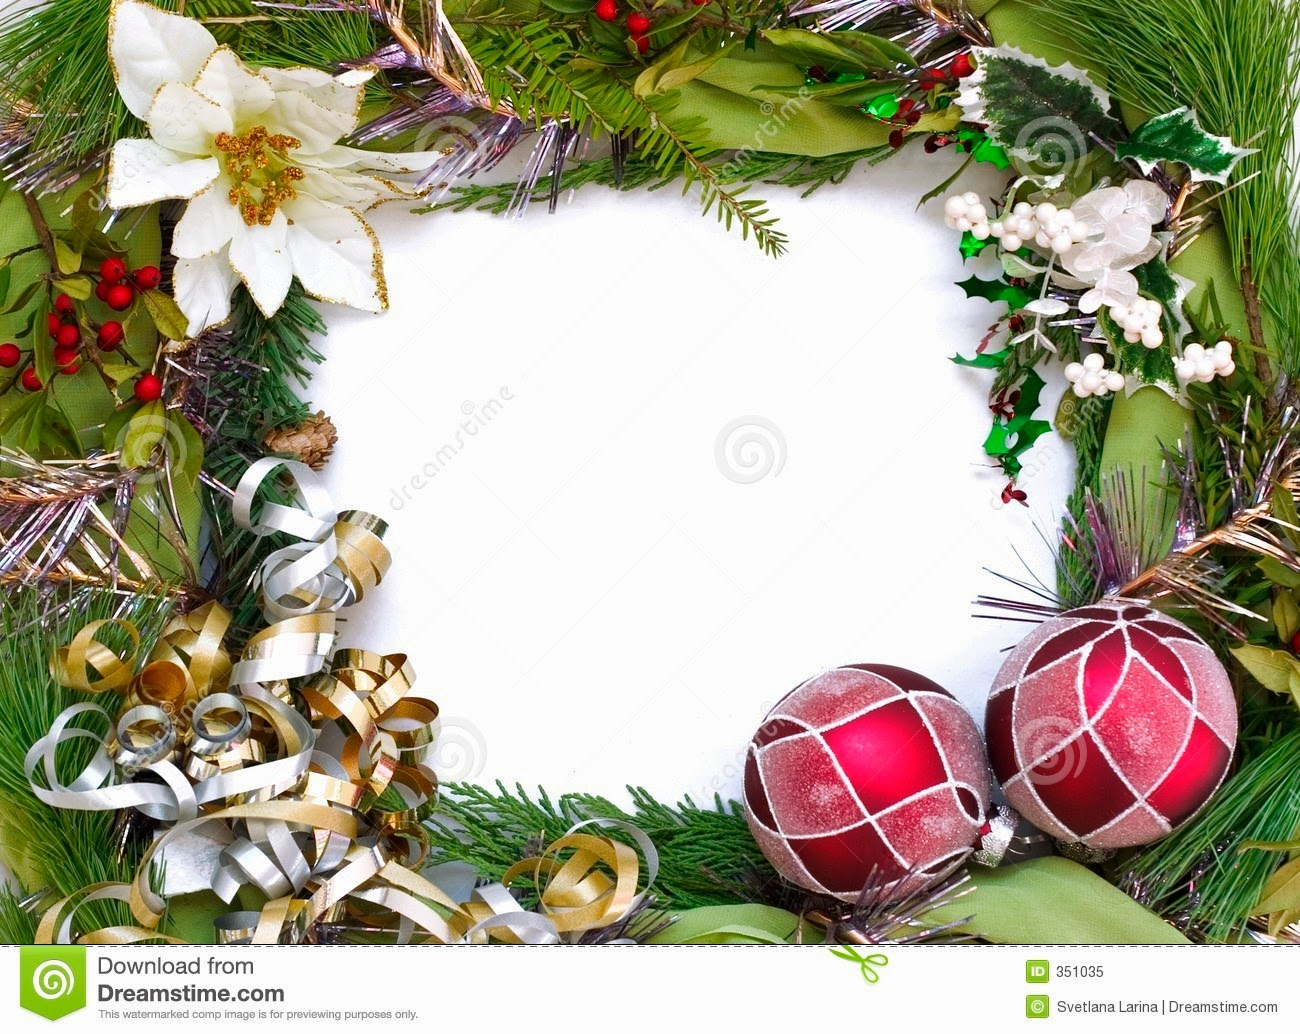 FRAMES GALLERY: Christmas Photo Frames 8